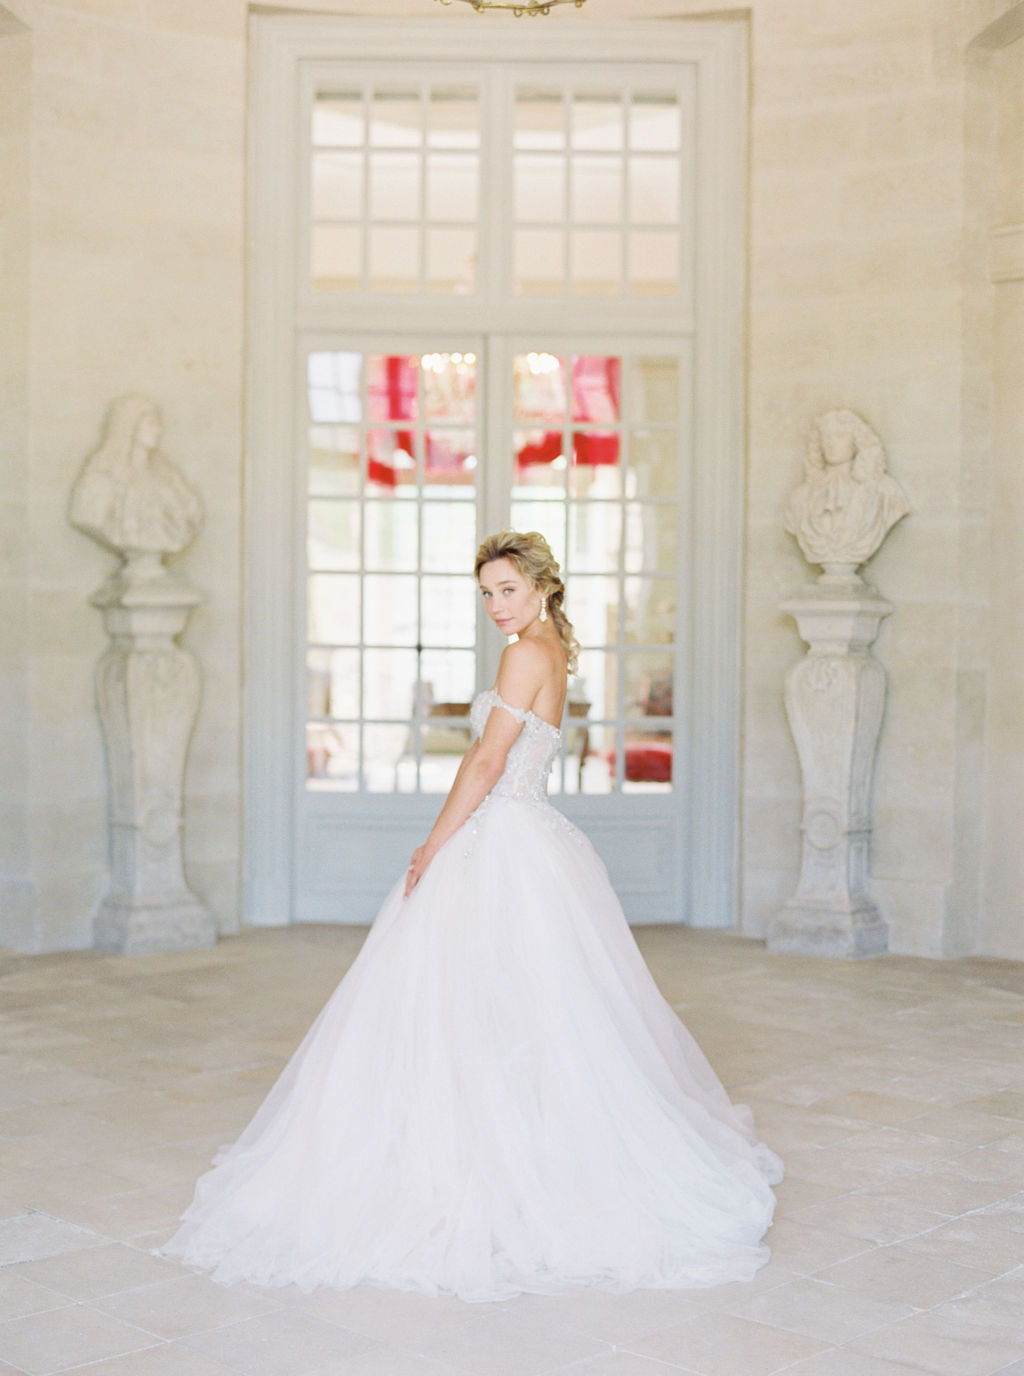 travellur_photoshoot_duchesse_de_villette_model_beauty_wedding_chateau_bridal_shoot.jpg